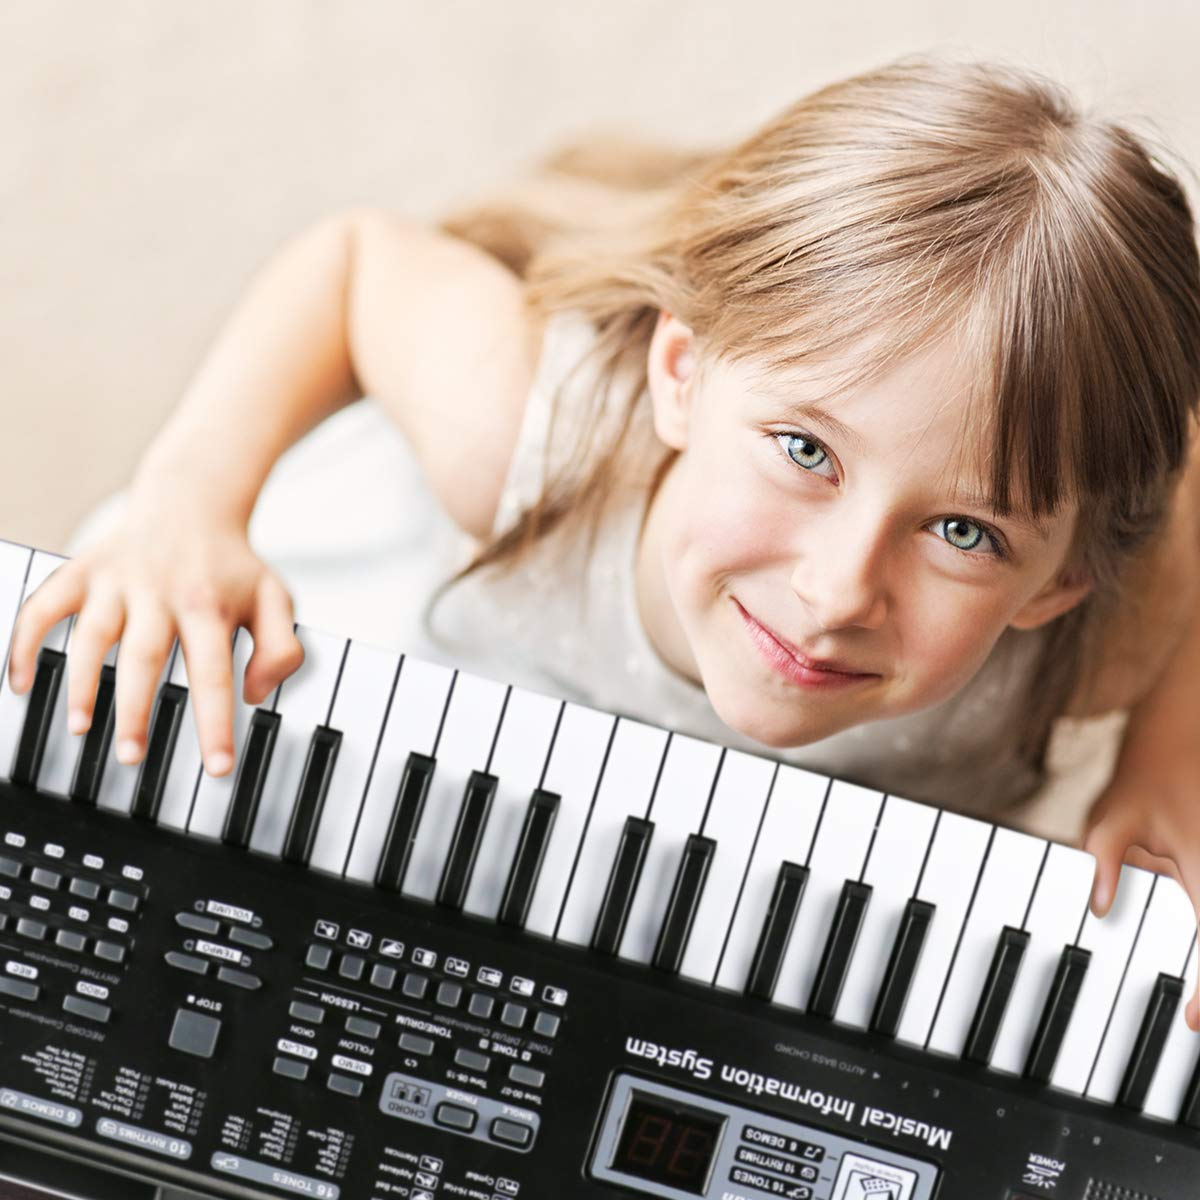 Digital Music Piano Keyboard 61 Key - Portable Electronic Musical Instrument with Microphone Kids Piano Musical Teaching Keyboard Toy For Birthday Christmas Festival Gift by Tencoz (Image #5)